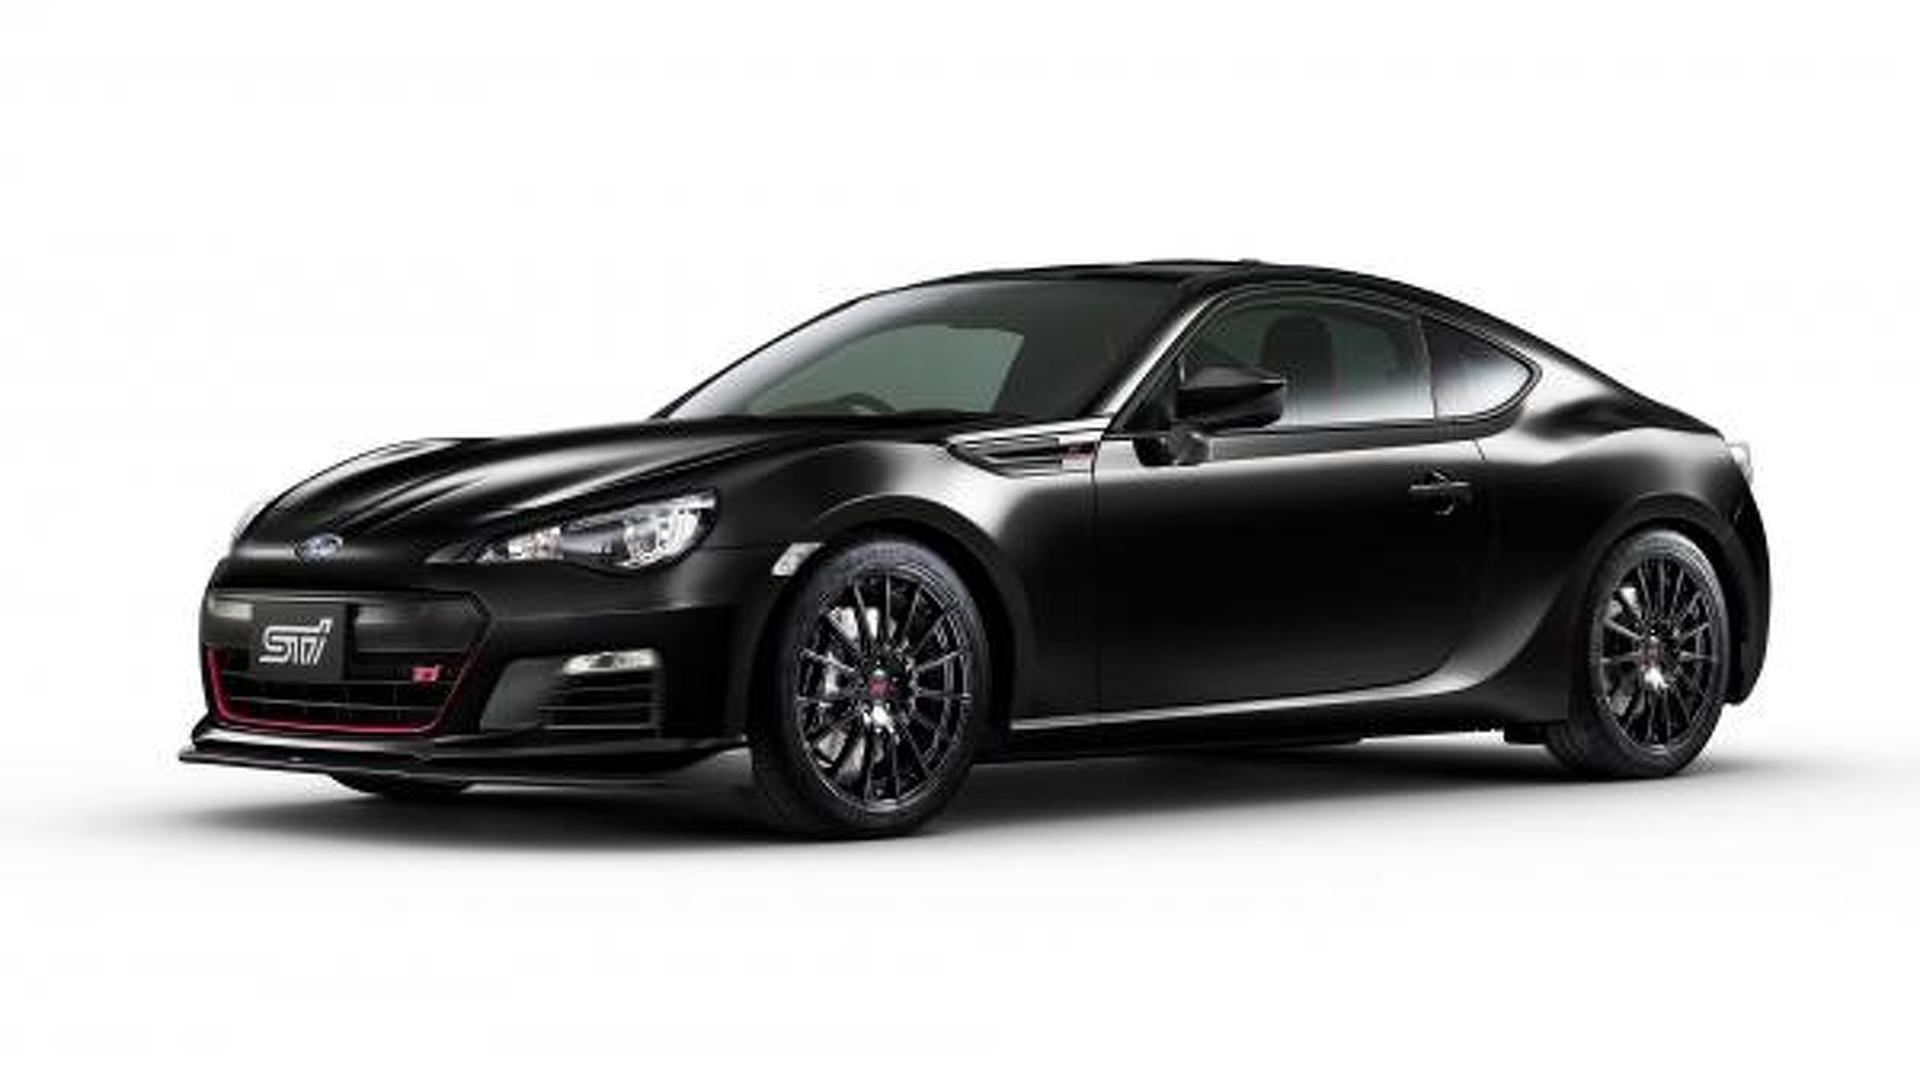 2017 Subaru Brz Ts Sti Launched In An With Several Mechanical Upgrades